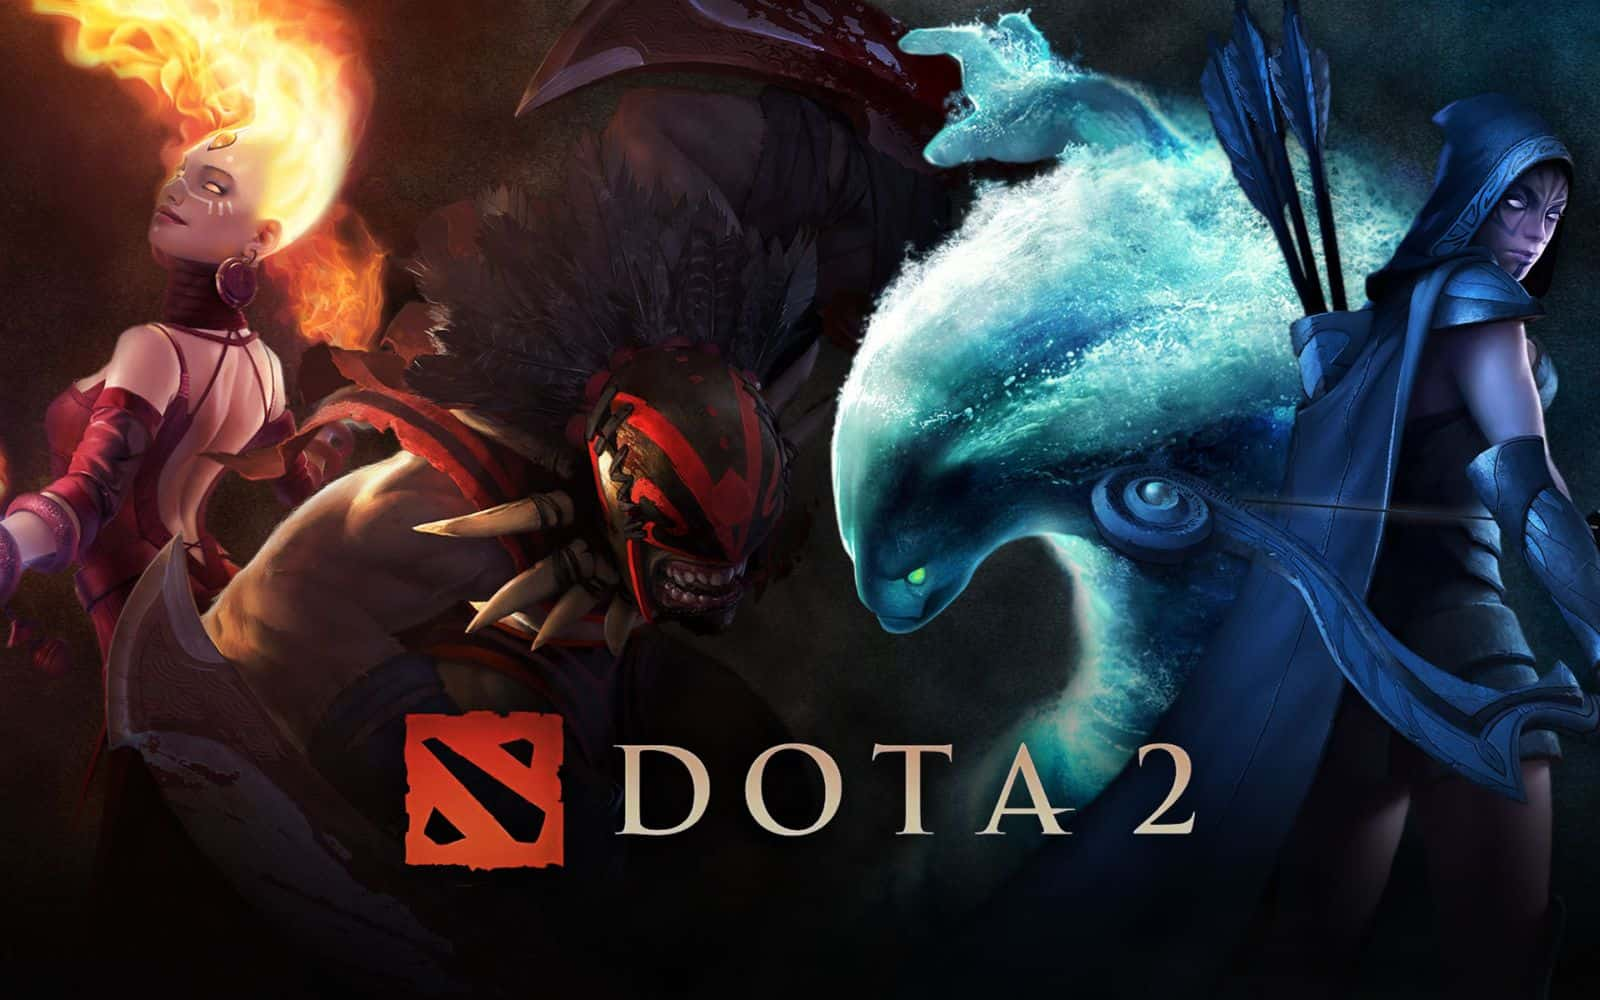 Dota2 full game download pc 1 - Free Game Cheats